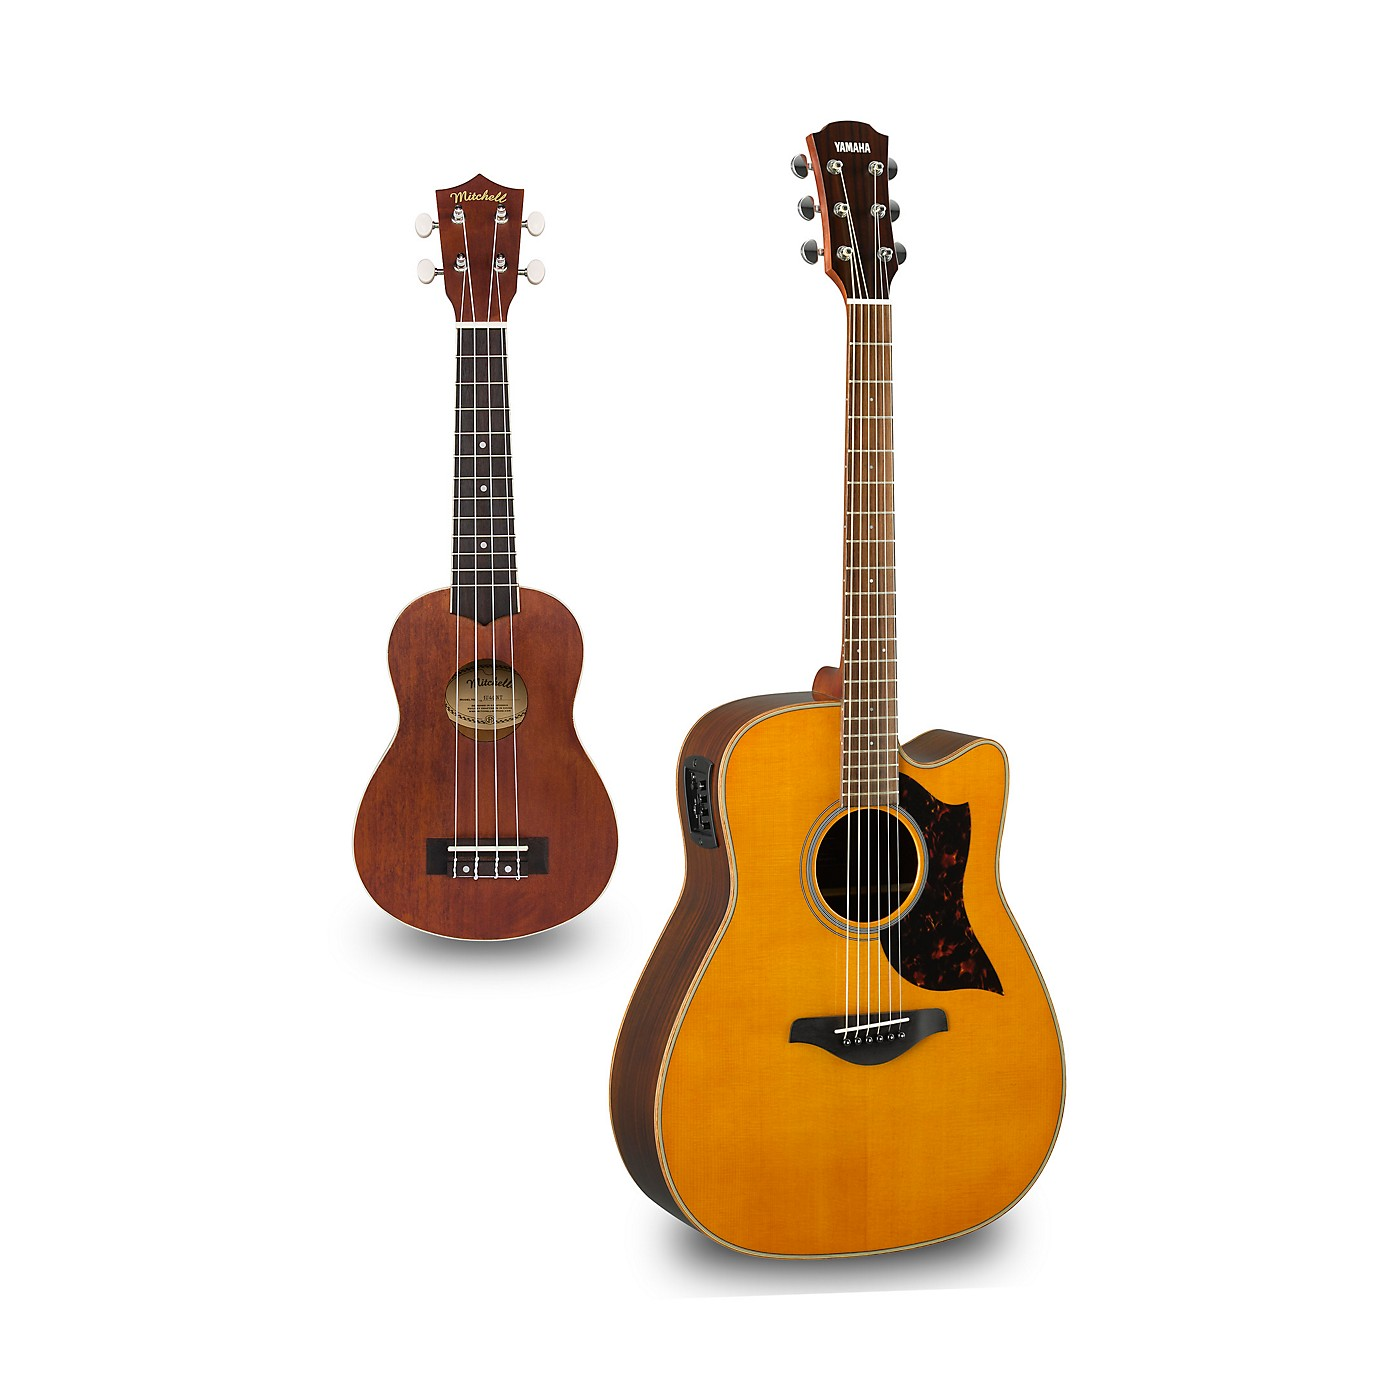 Yamaha A1R Cutaway Dreadnought Acoustic-Electric Guitar and Ukulele Package thumbnail